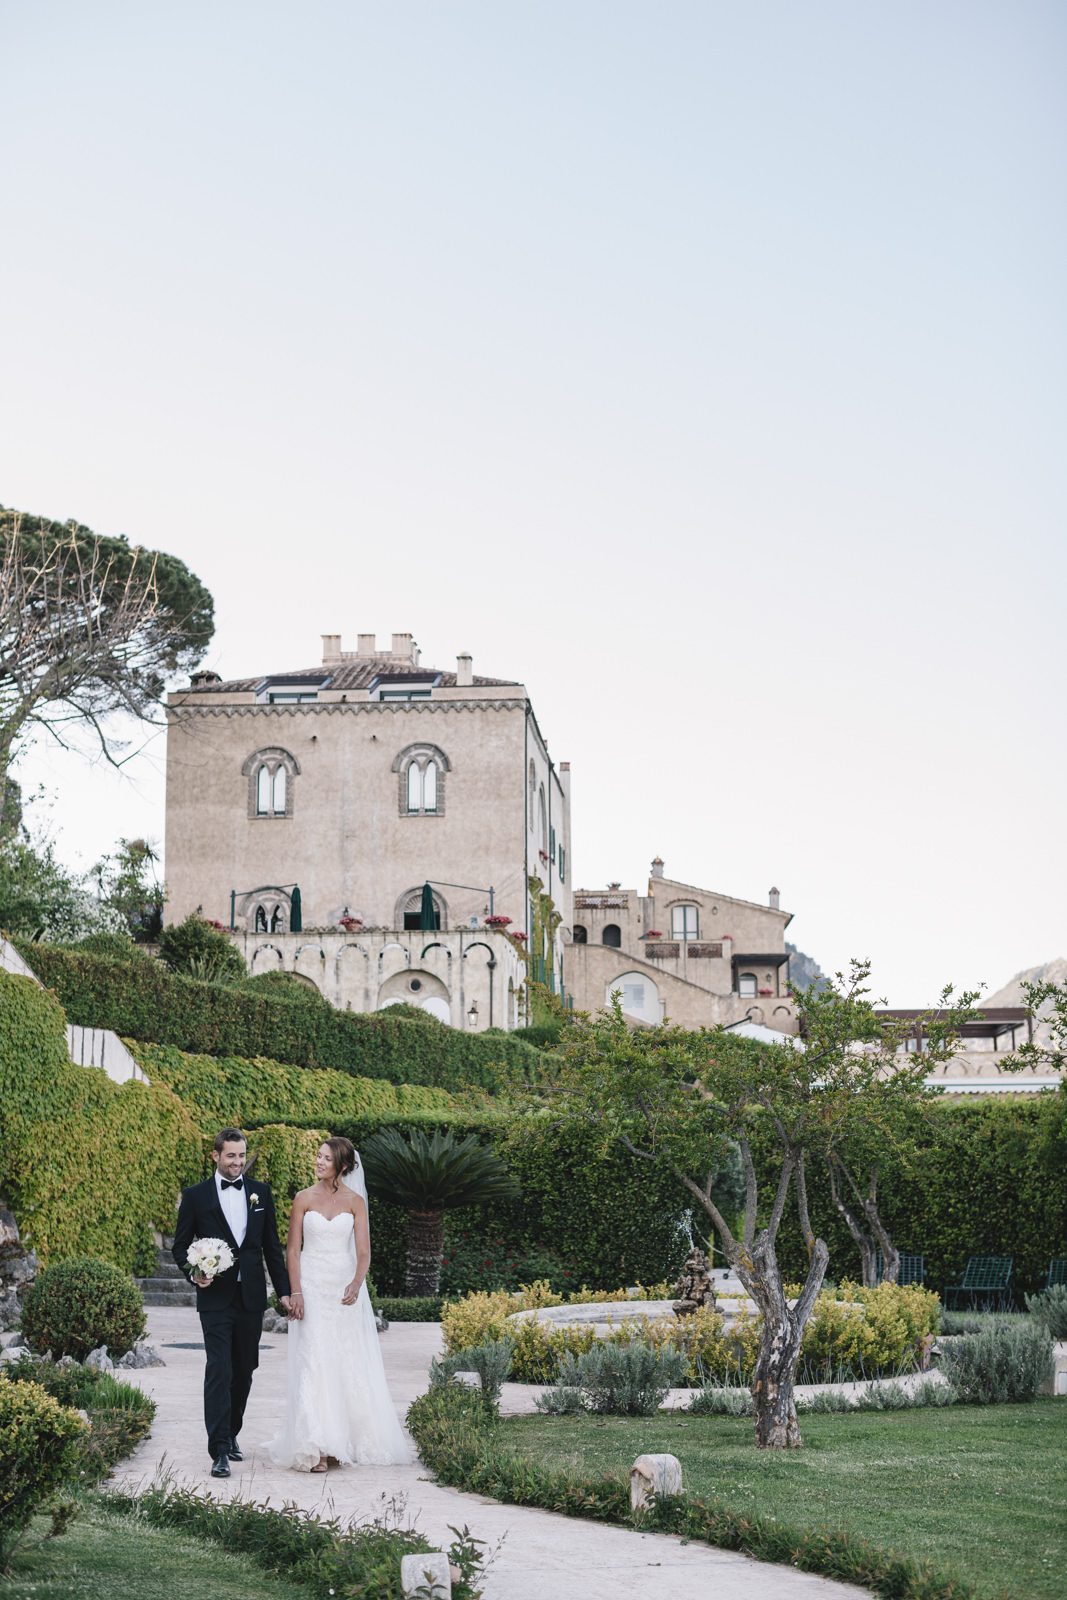 the bride and the groom walking together in villa cimbrone